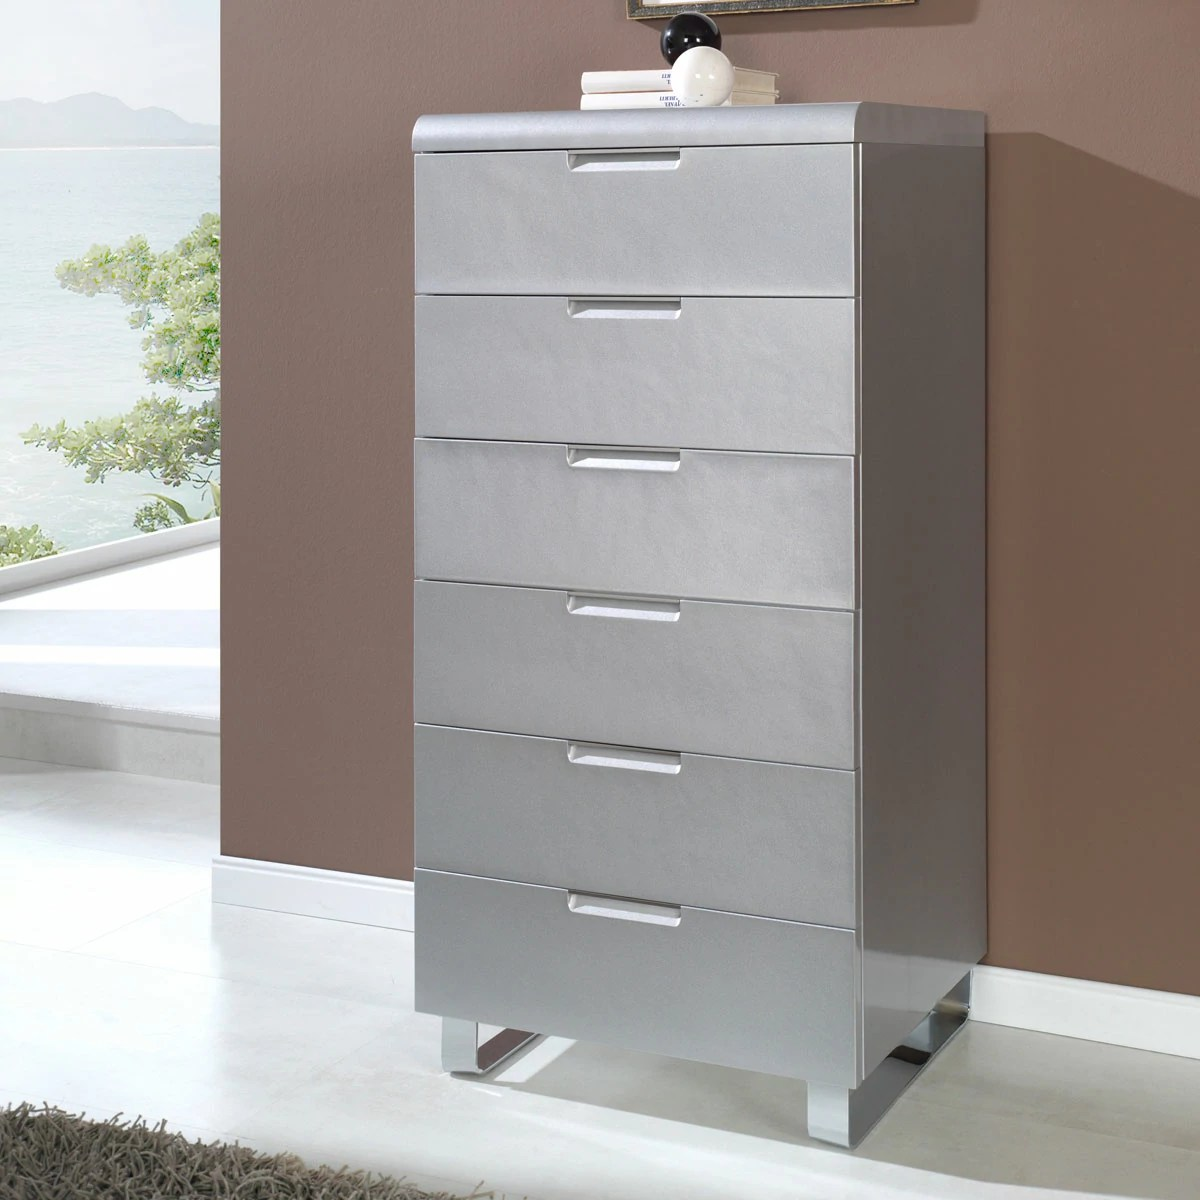 Chiffonnier Soldes Chiffonier Design 118x60 Collection Contempo Blanc 6 Tiroirs